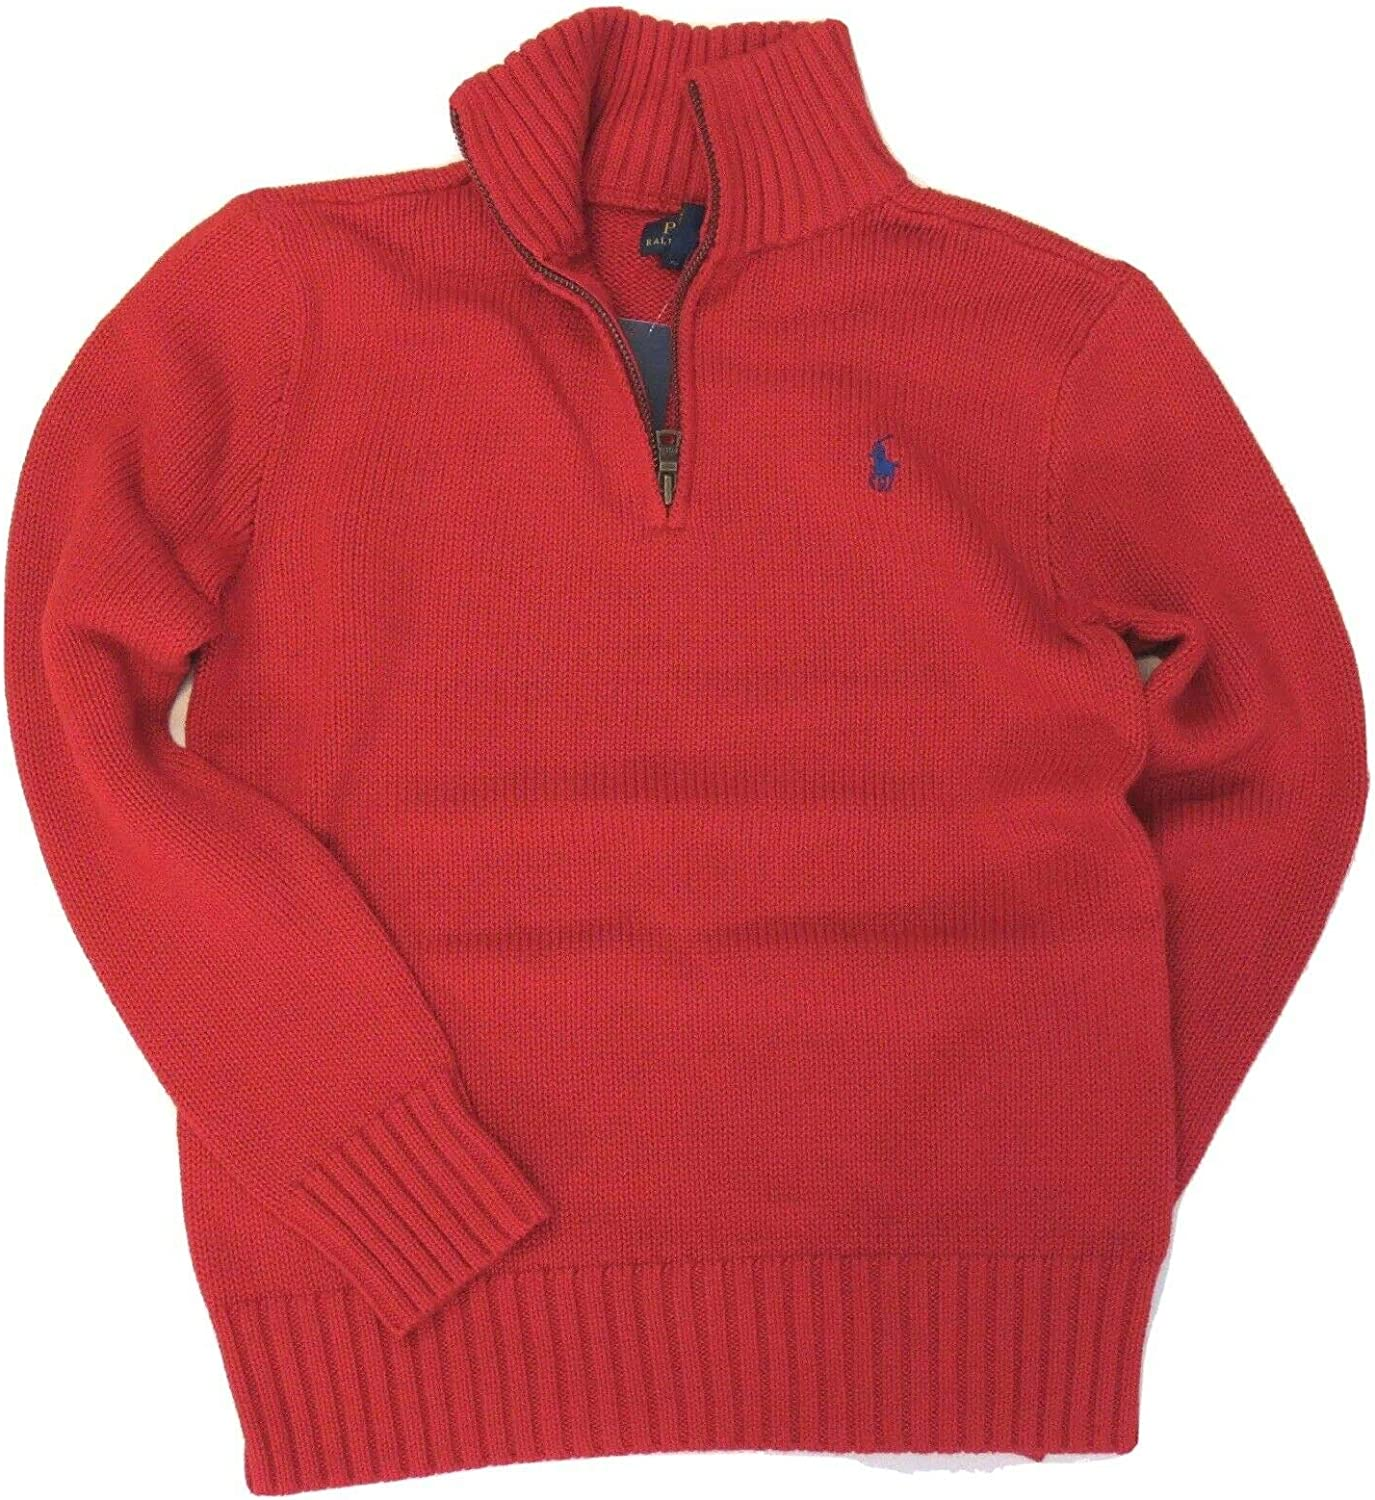 Polo Ralph Lauren Boys Sweater Kids Half Zip Pullover Size 18-20 (X-Large) Red